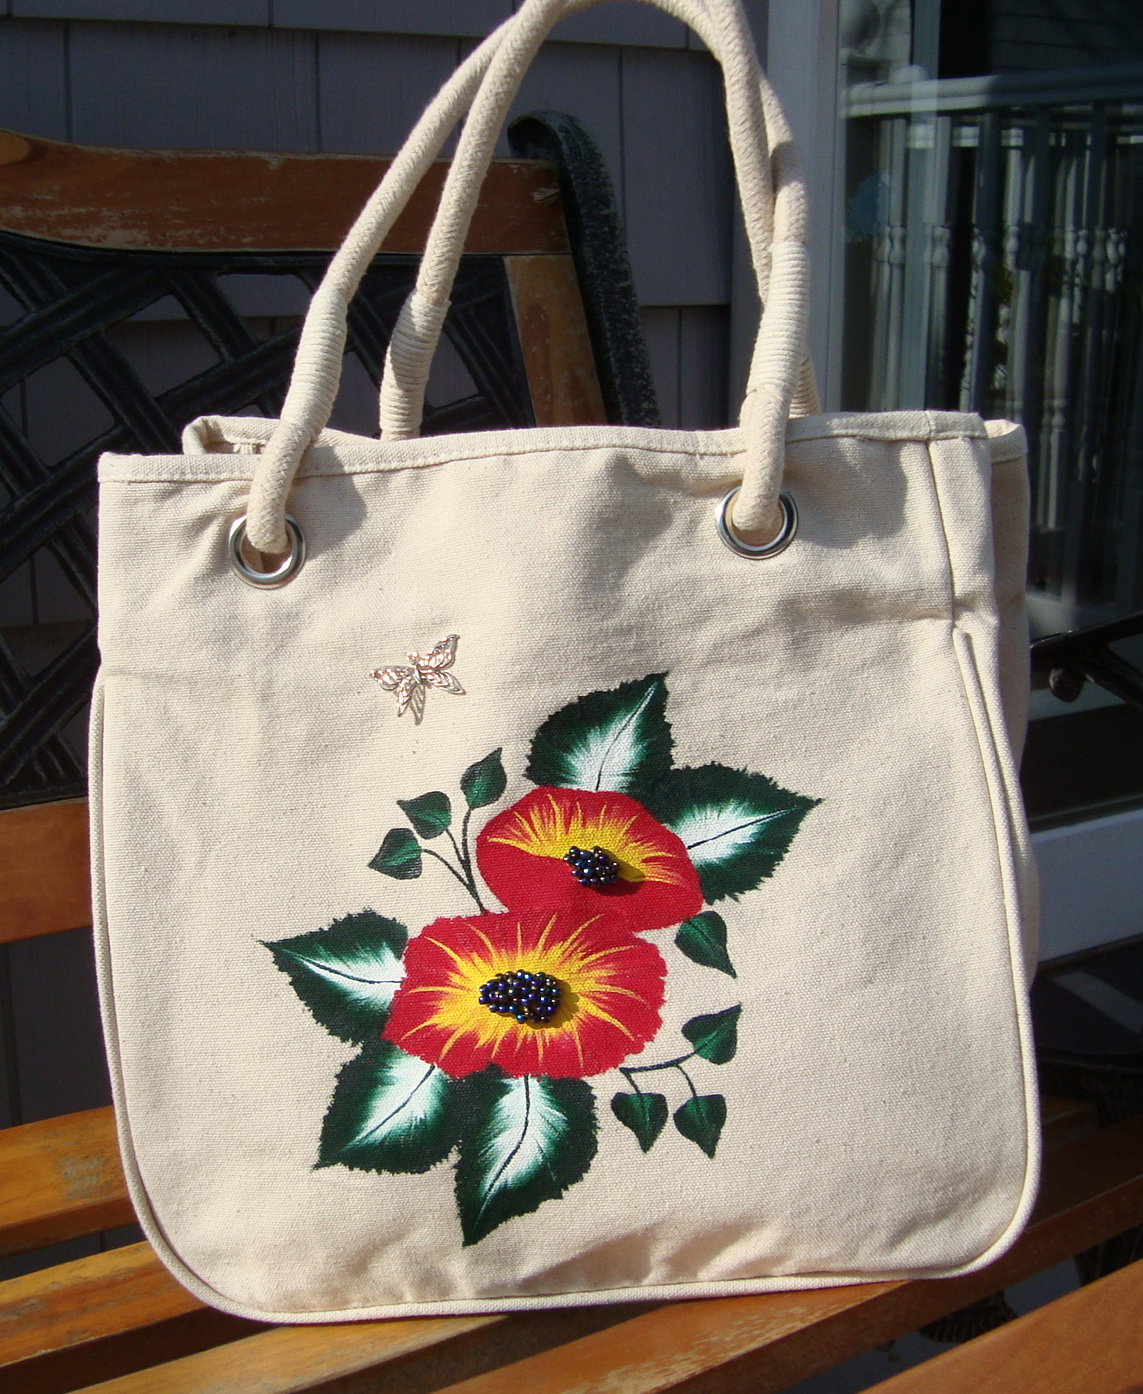 Painted Tote Bag With Bright Flowers